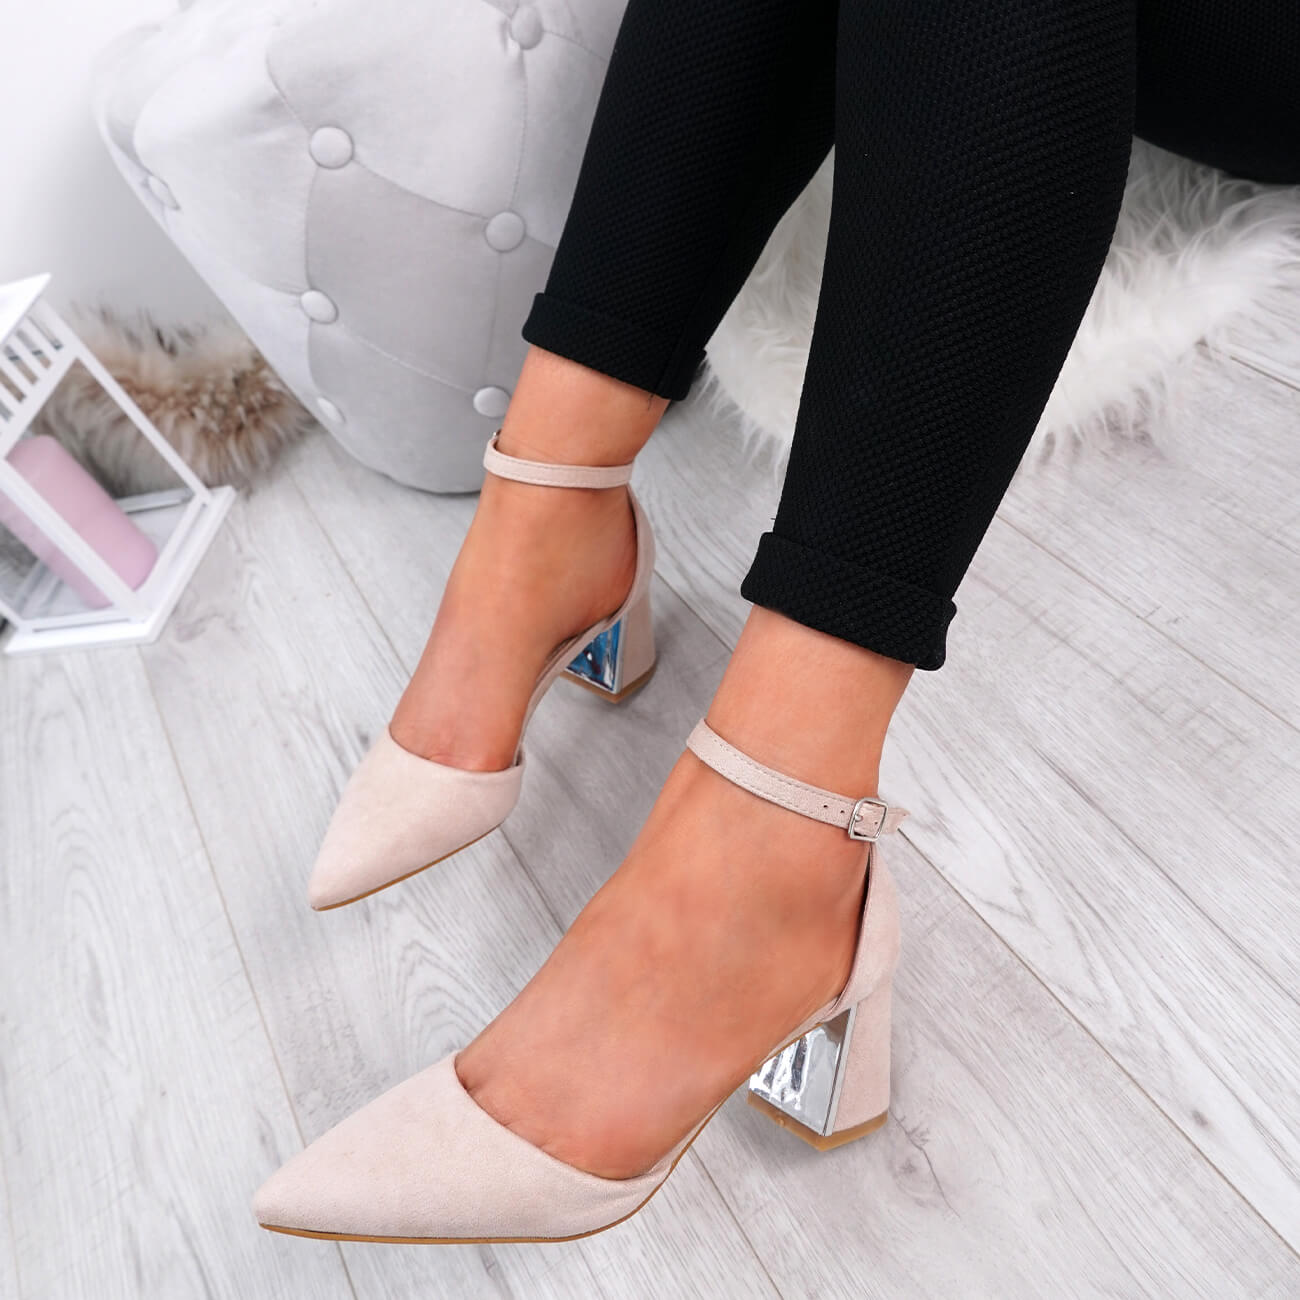 WOMENS-LADIES-ANKLE-STRAP-POINTED-HIGH-BLOCK-HEEL-PUMPS-COURT-SHOES-SIZE thumbnail 13